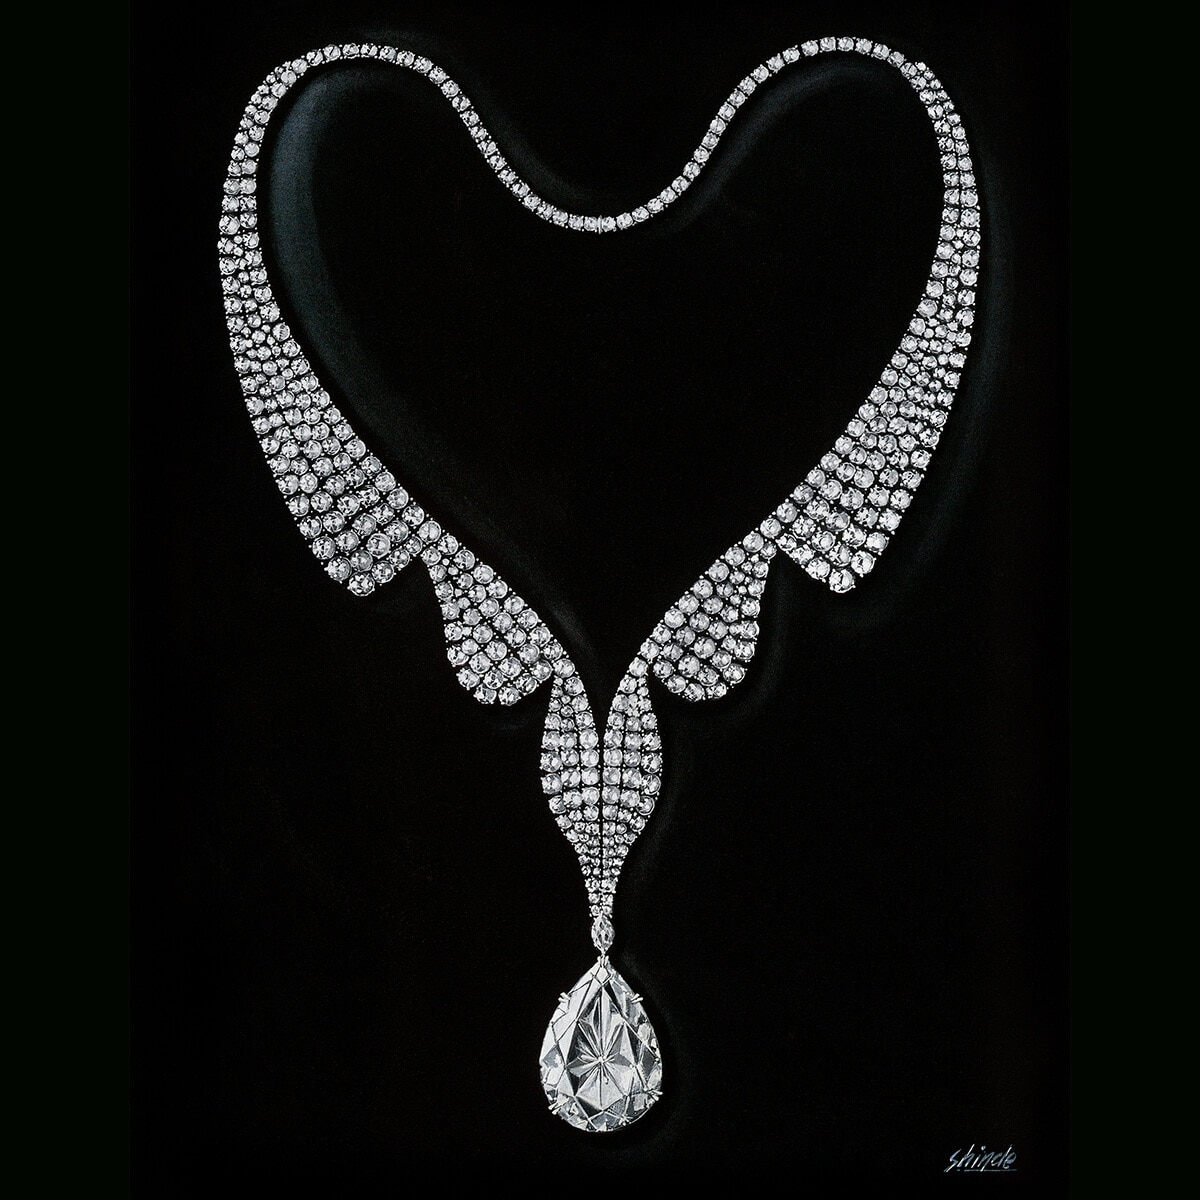 Sketch of a necklace featuring aflawless 69.42 carat pear-shaped diamond that would be purchased by Richard Burton for Elizabeth Taylor and named the Taylor-Burton Diamond